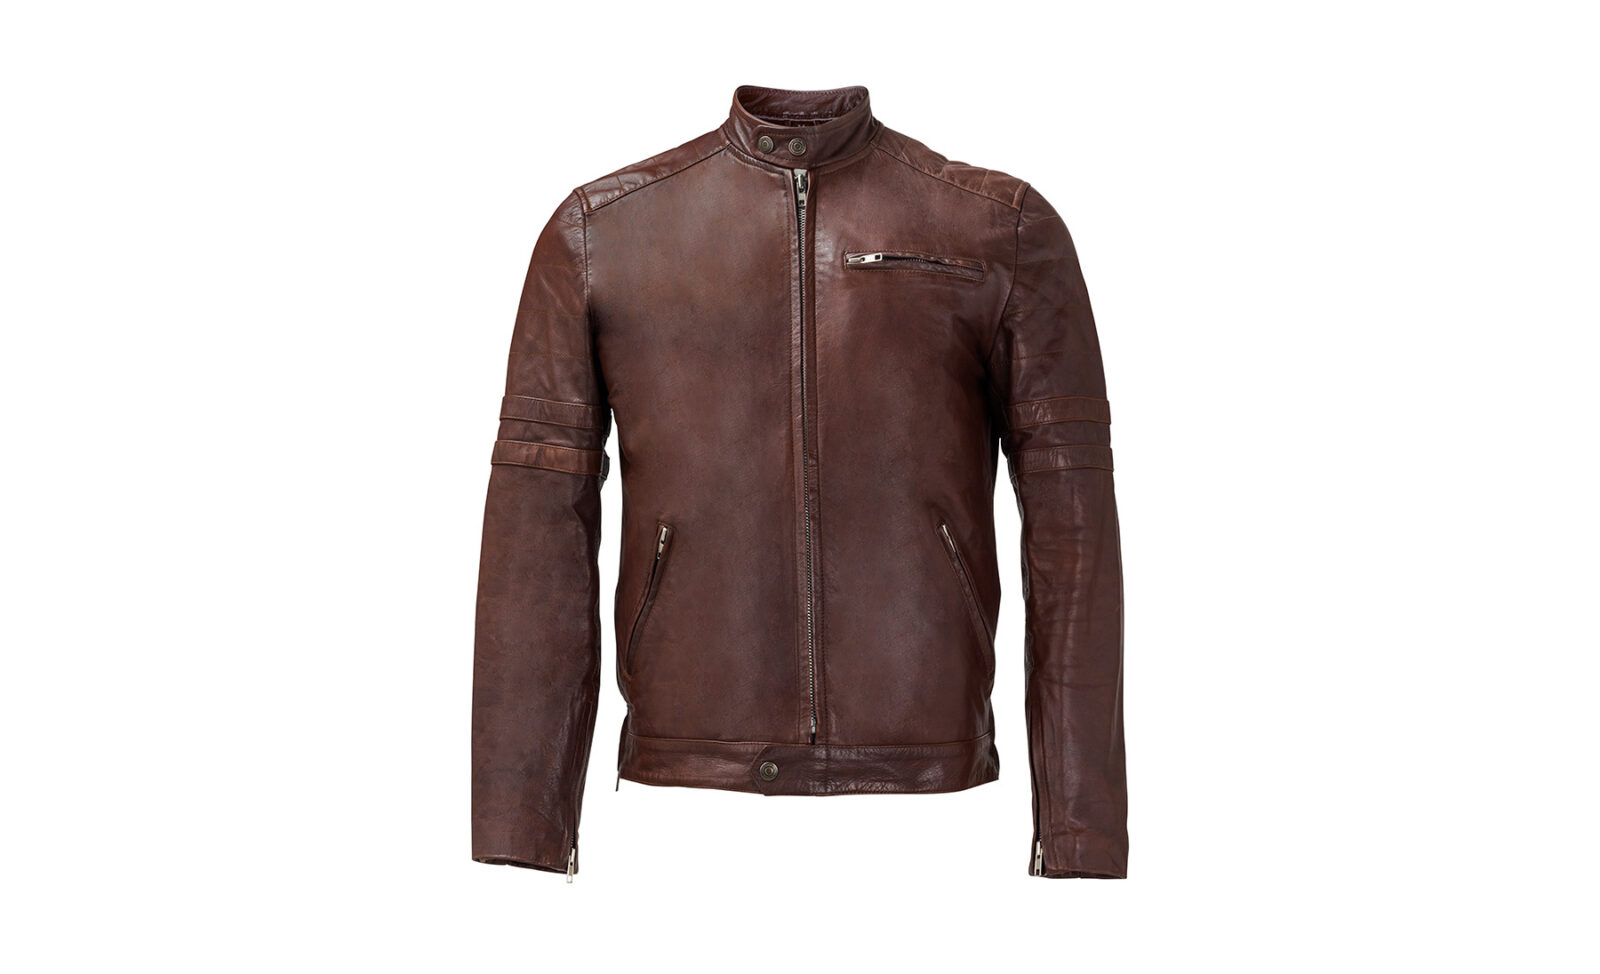 Bene Motorcycle Jacket 1600x974 - Bene Motorcycle Jacket by 55 Collection